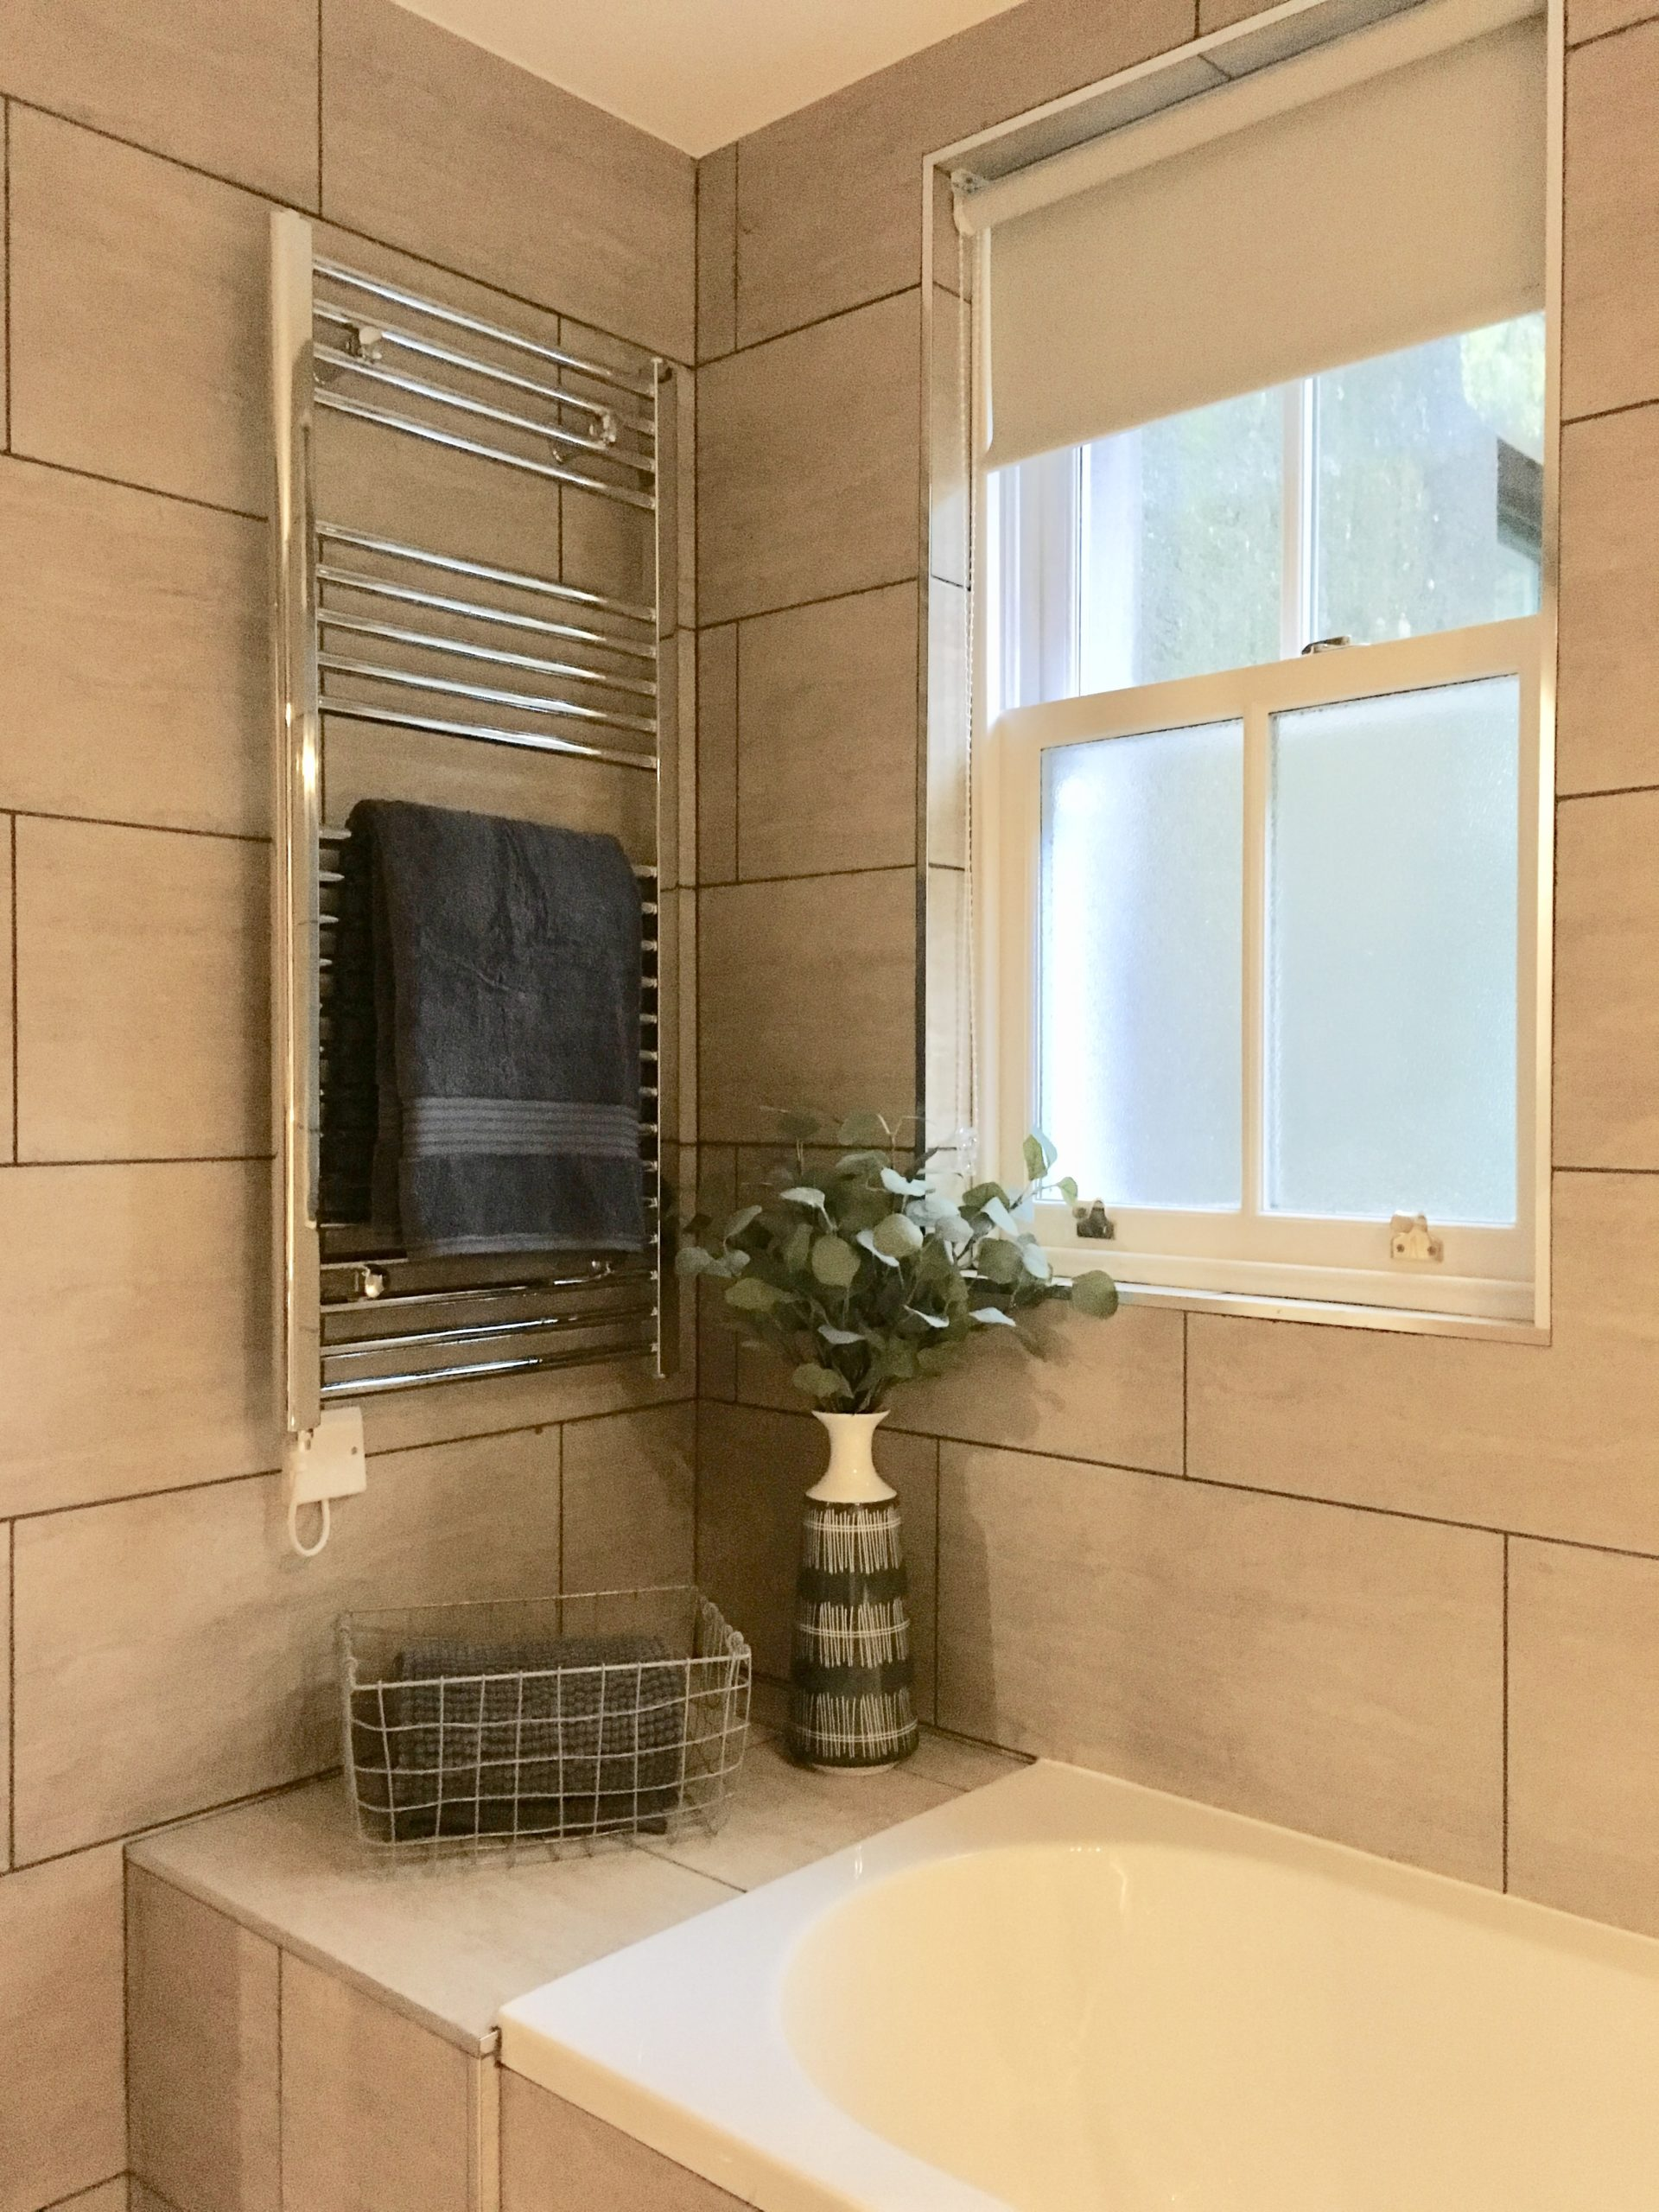 Bathroom styling and bathroom accessories in show home designed by Amelia Wilson Interiors Ltd